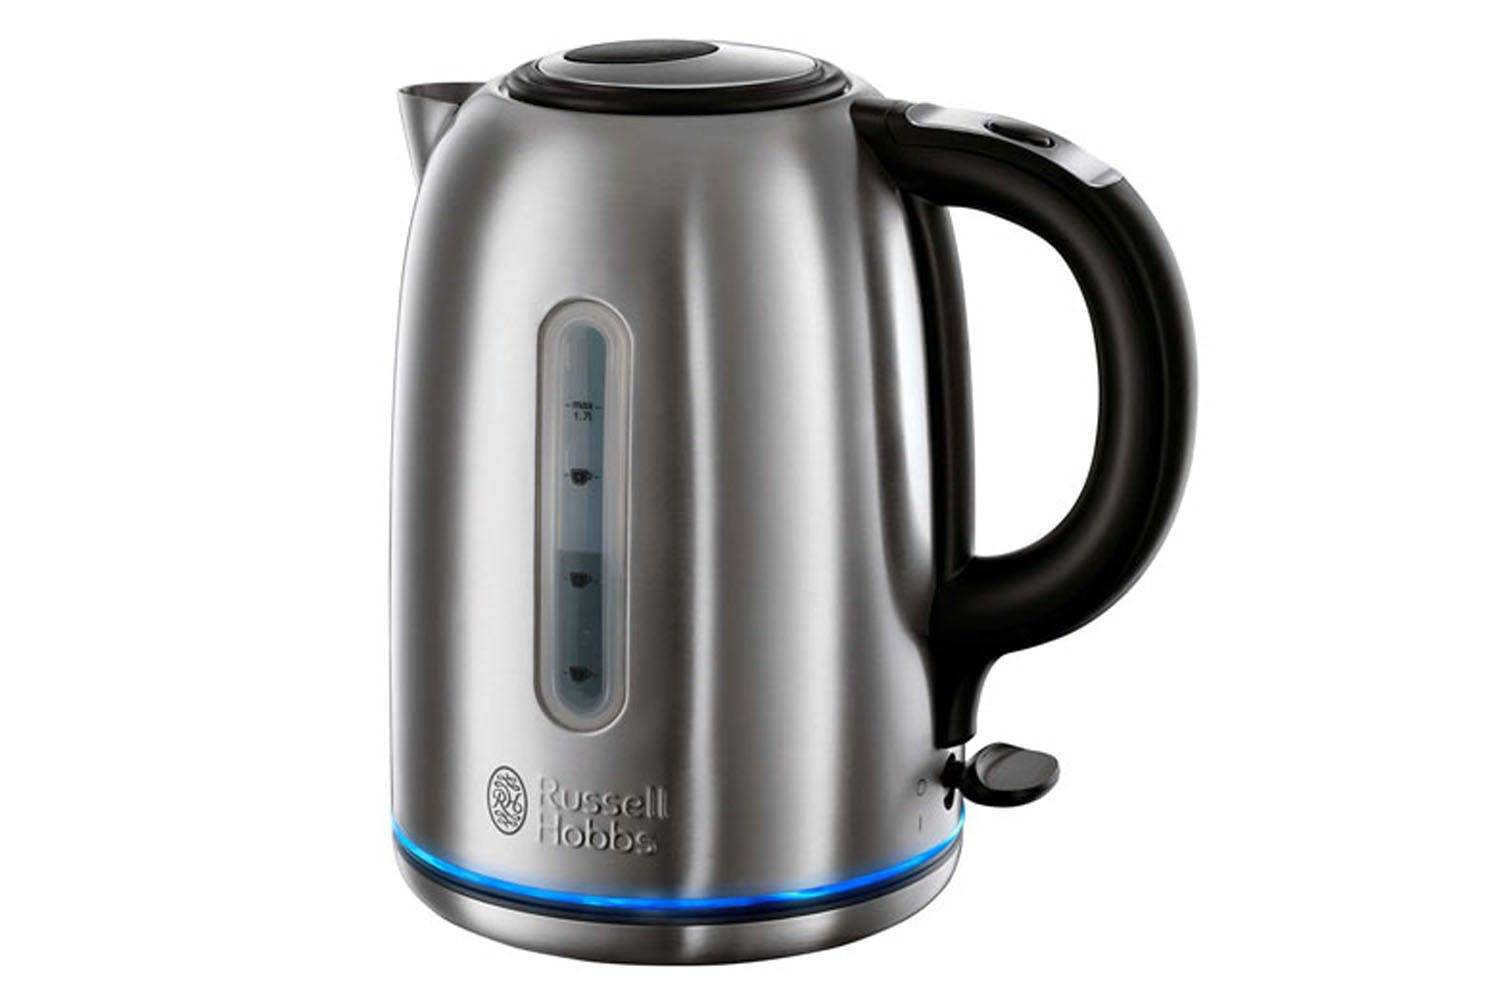 Russell Hobbs 1.7L Quiet Boil Kettle | 20460 | Stainless Steel